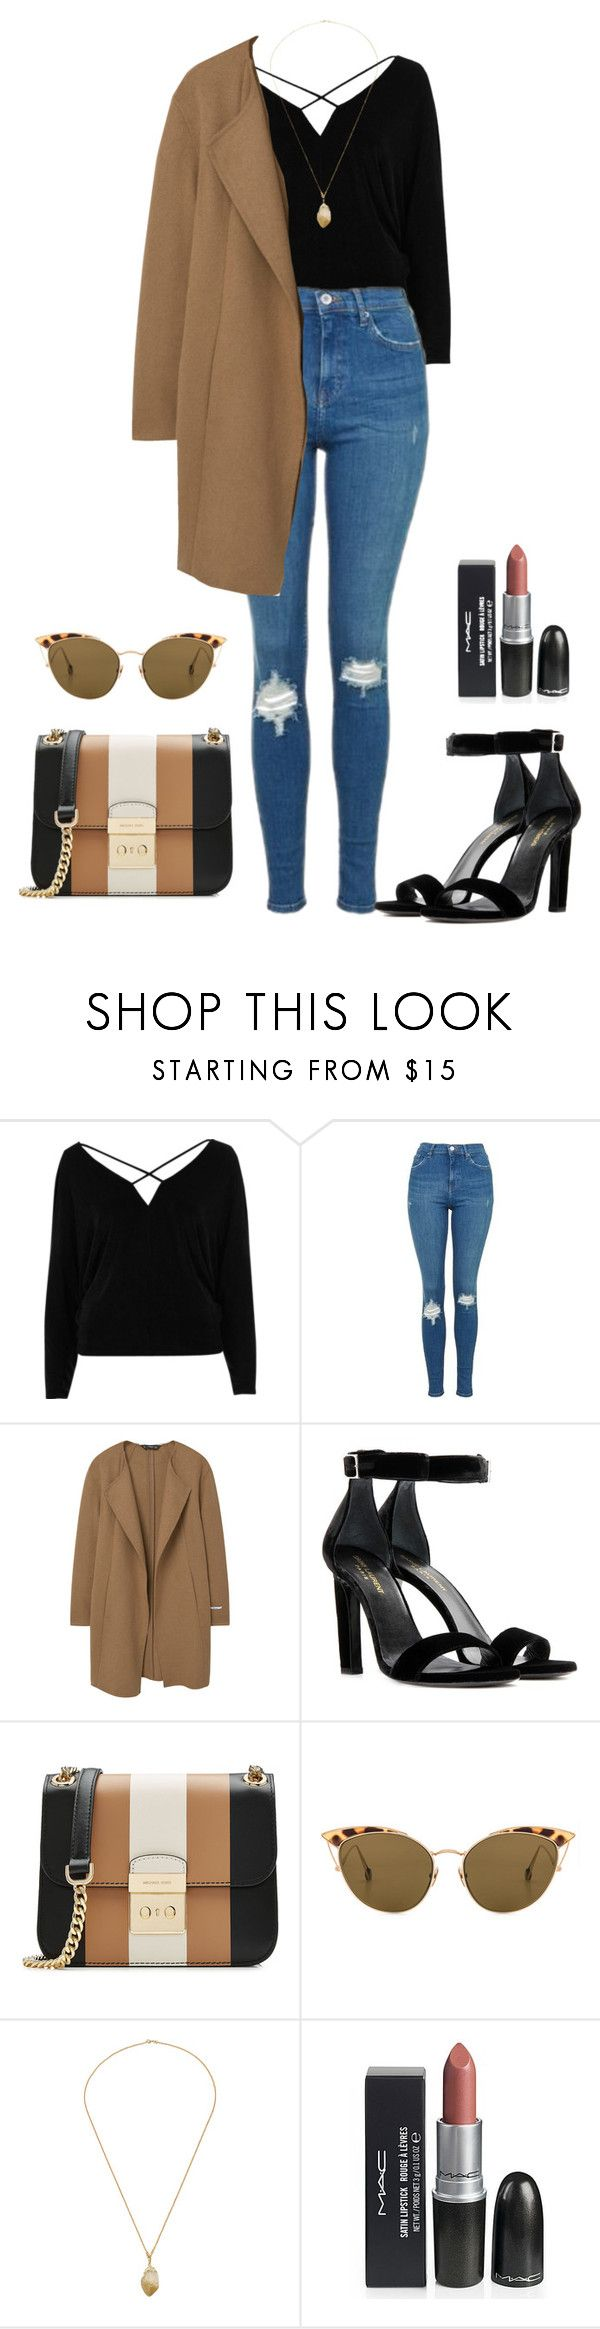 """""""06/28/17"""" by mery-santiago ❤ liked on Polyvore featuring River Island, Topshop, MANGO, Yves Saint Laurent, MICHAEL Michael Kors and Ahlem"""